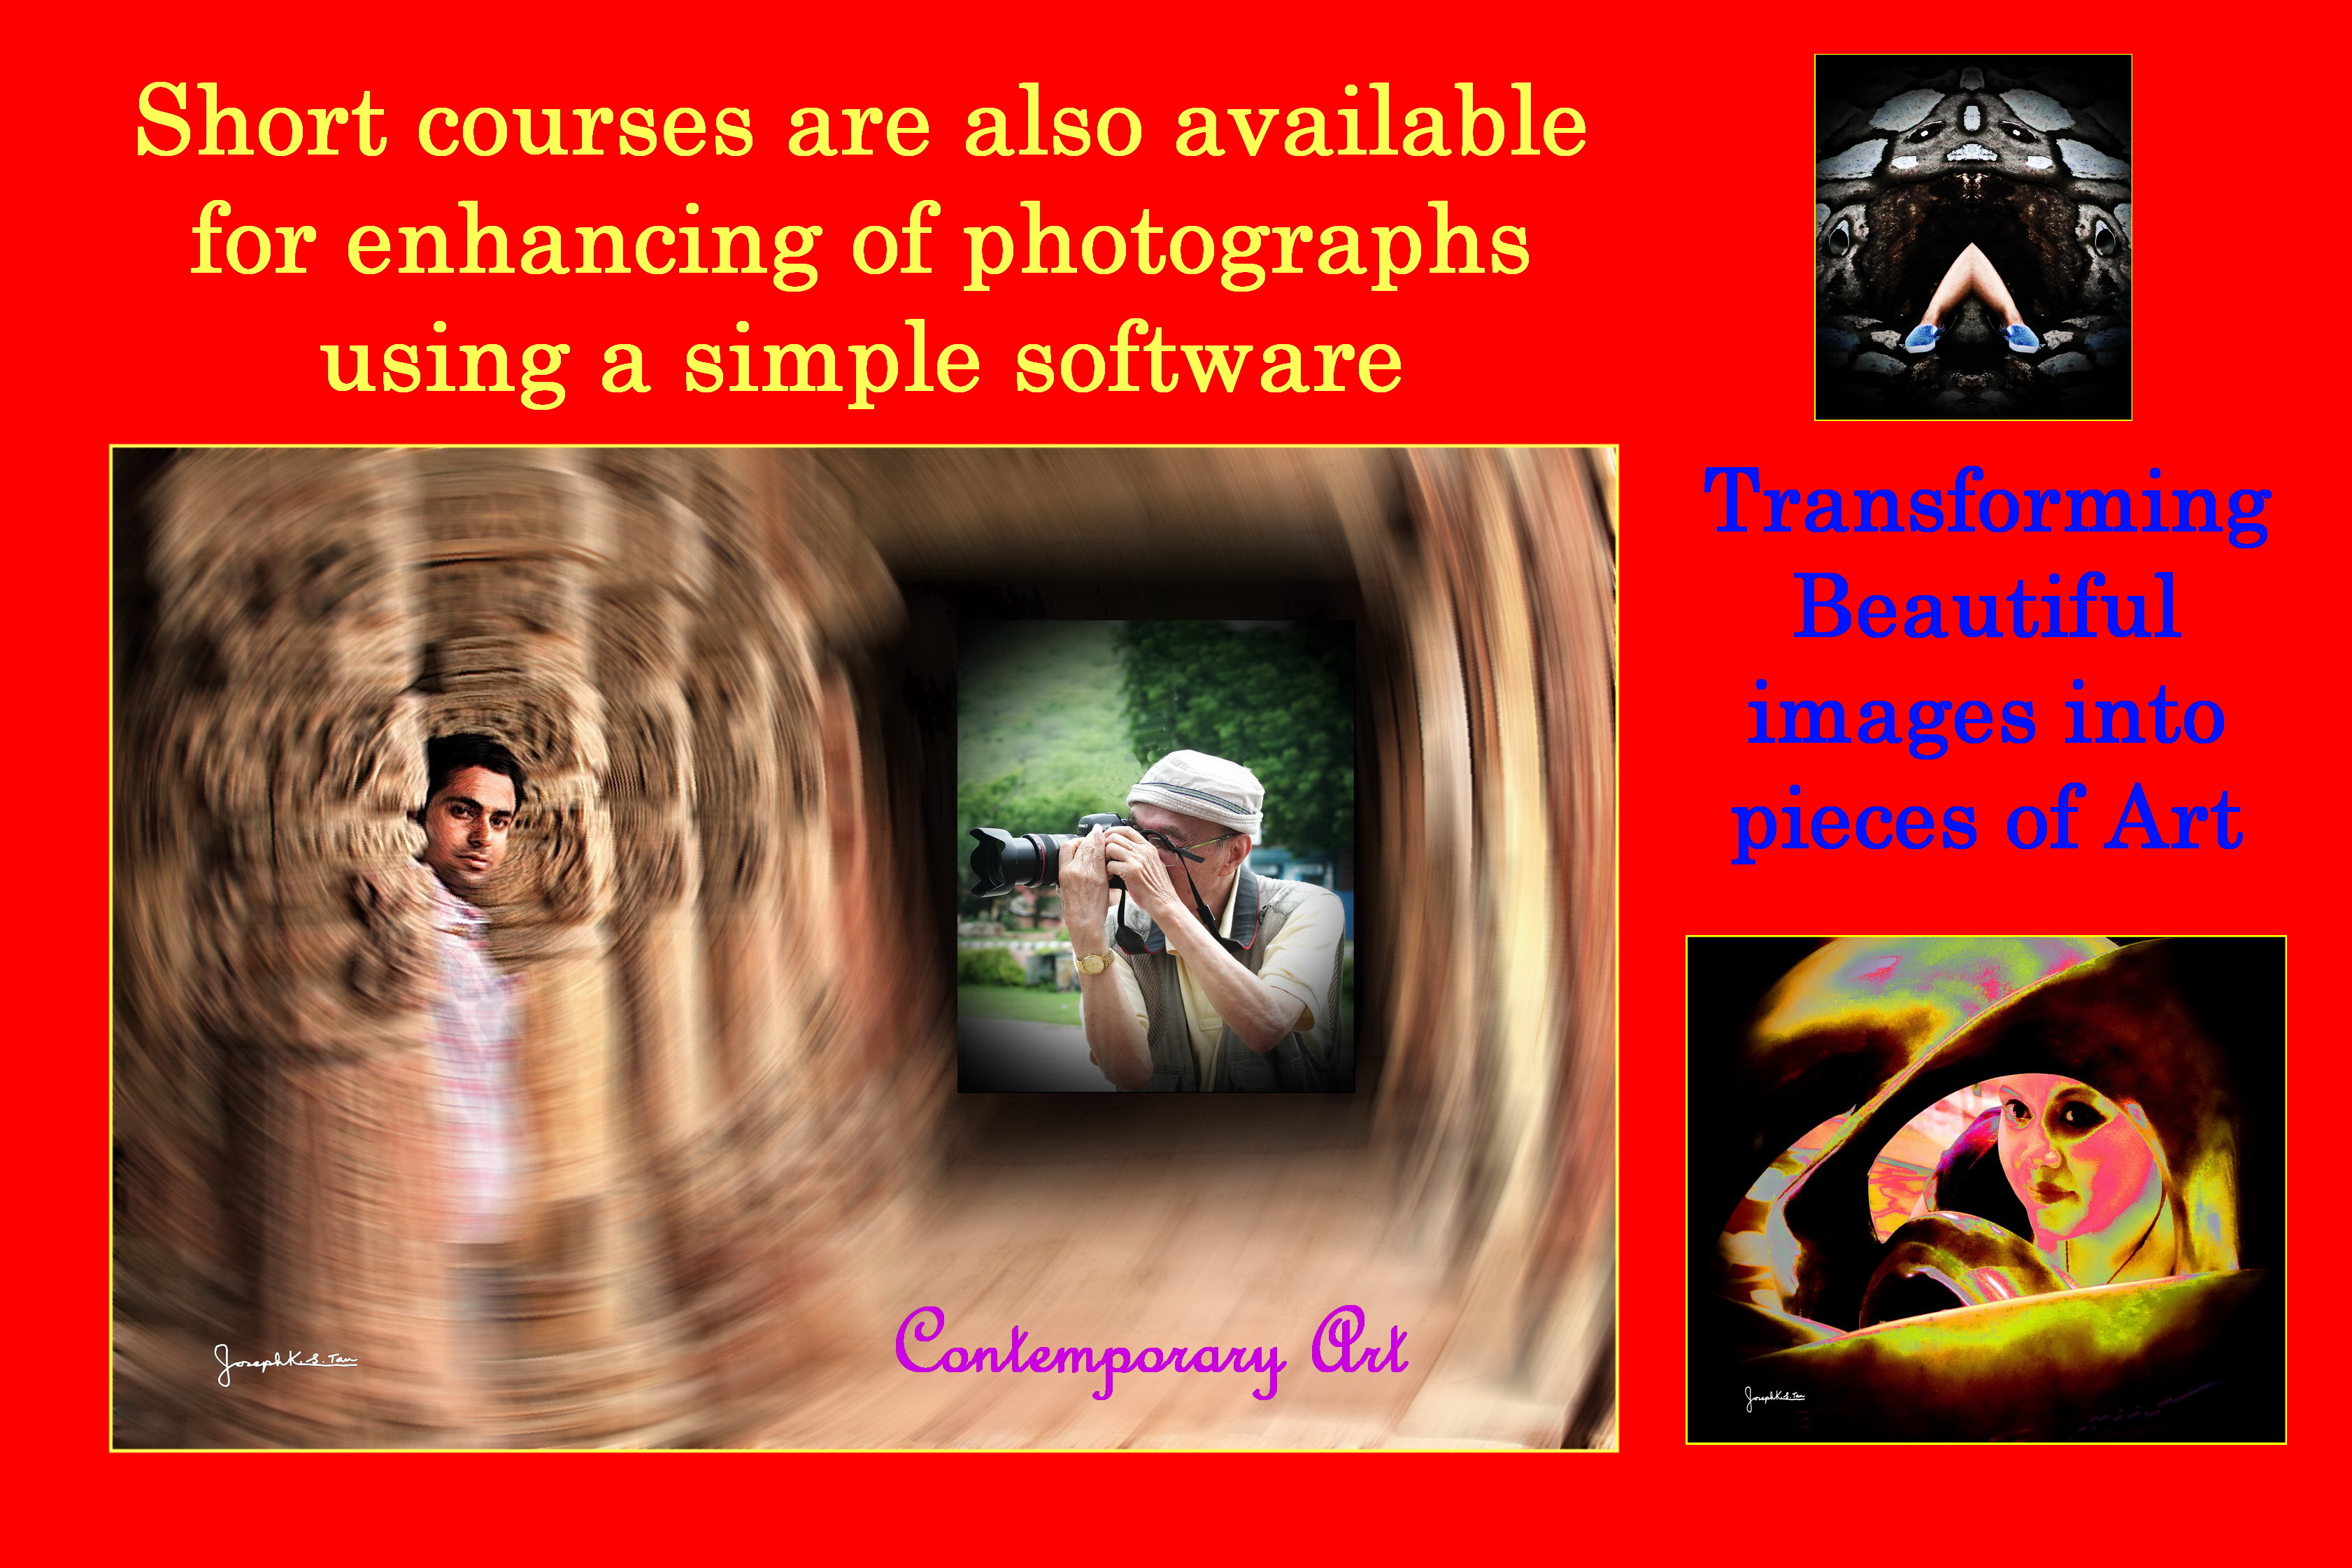 Short Courses for Enhancing photos for printing into booklet are available.